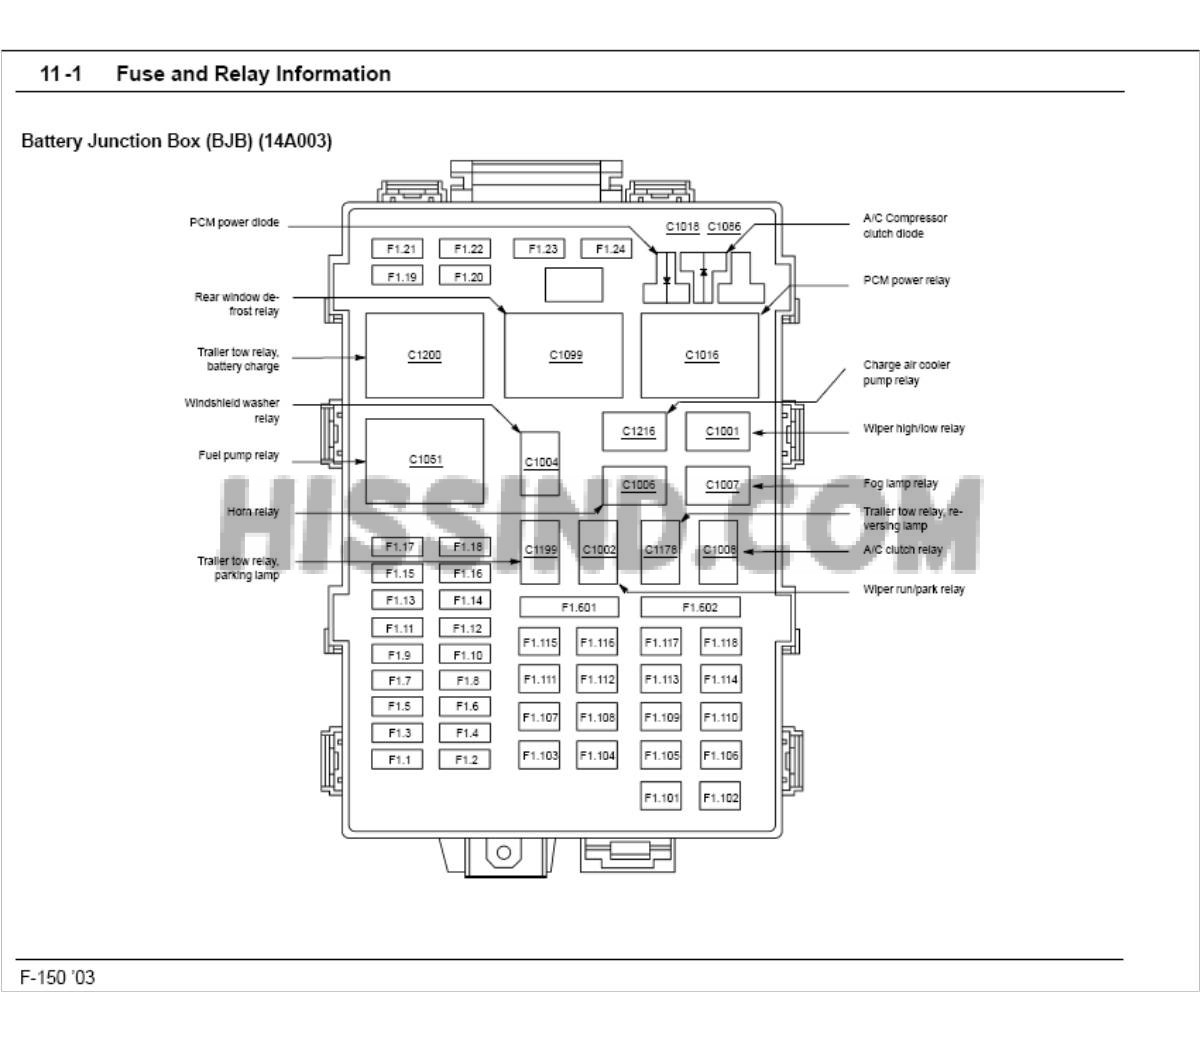 hight resolution of 2000 f150 fuse box diagram 2000 ford f150 fuse box diagram engine bay